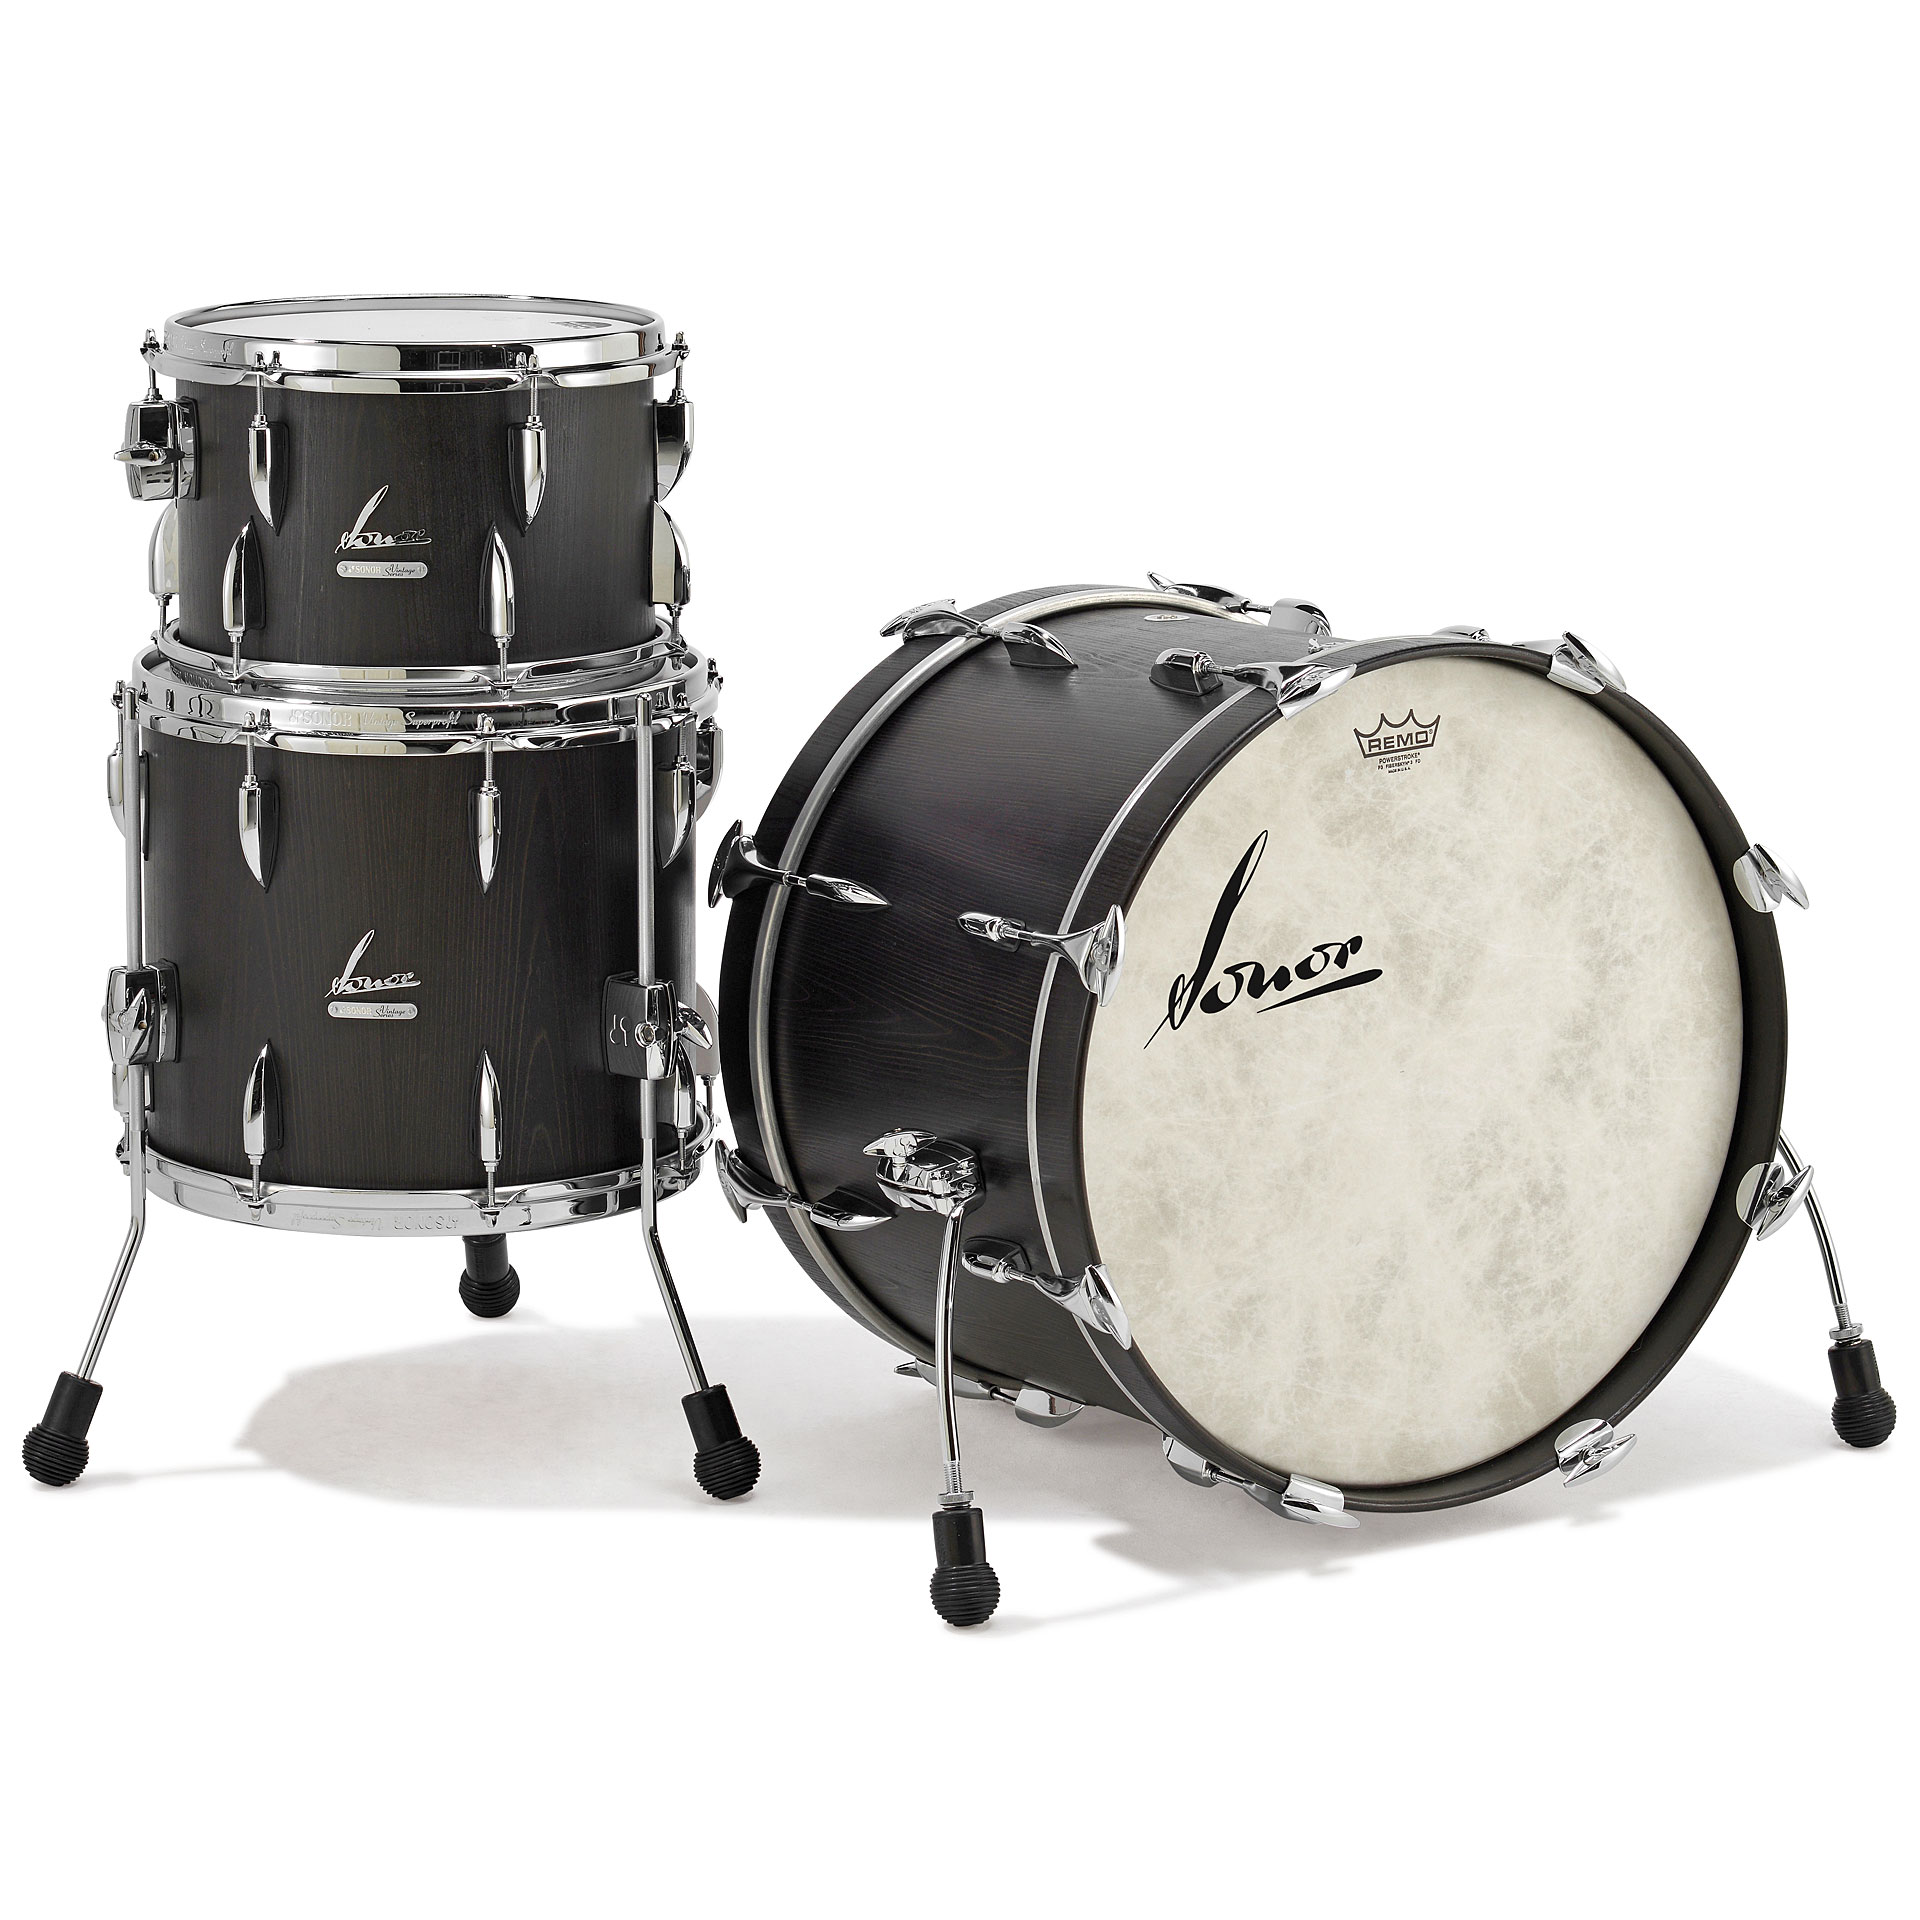 Sonor vintage series vt15 three20 vintage onyx drum kit for Classic house drums